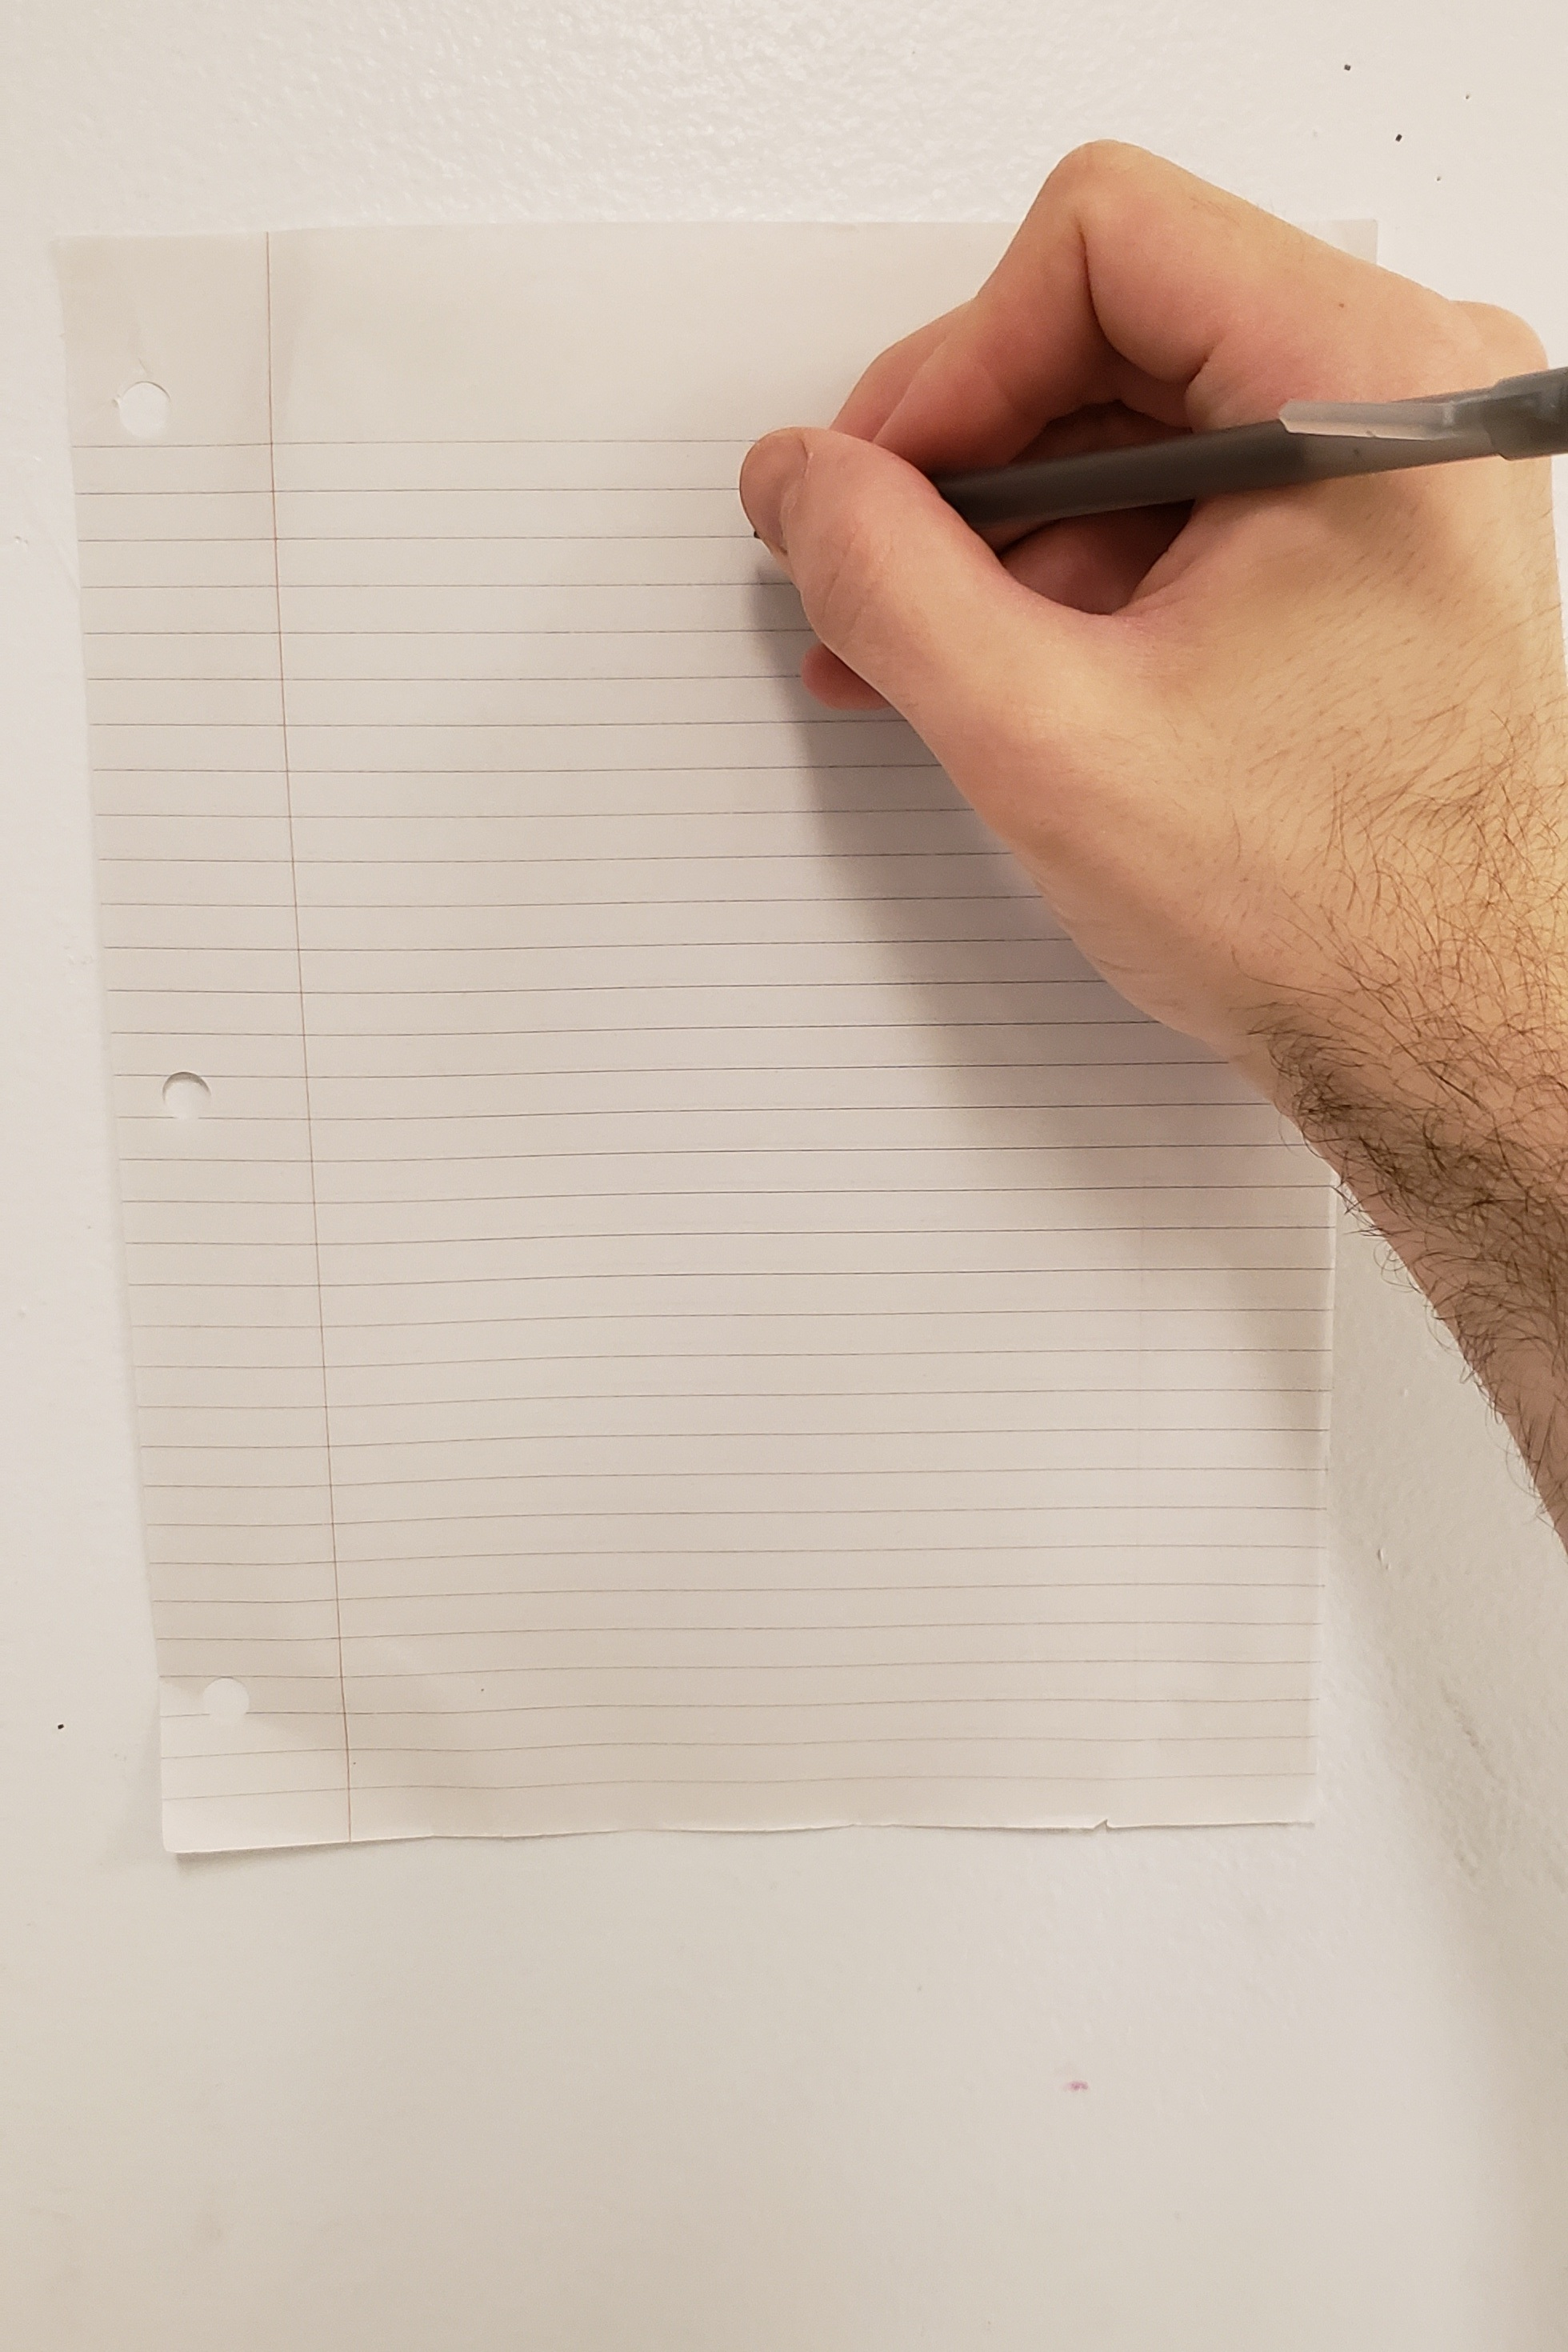 A hand holds a pen to a piece of lined paper taped to a white school wall.